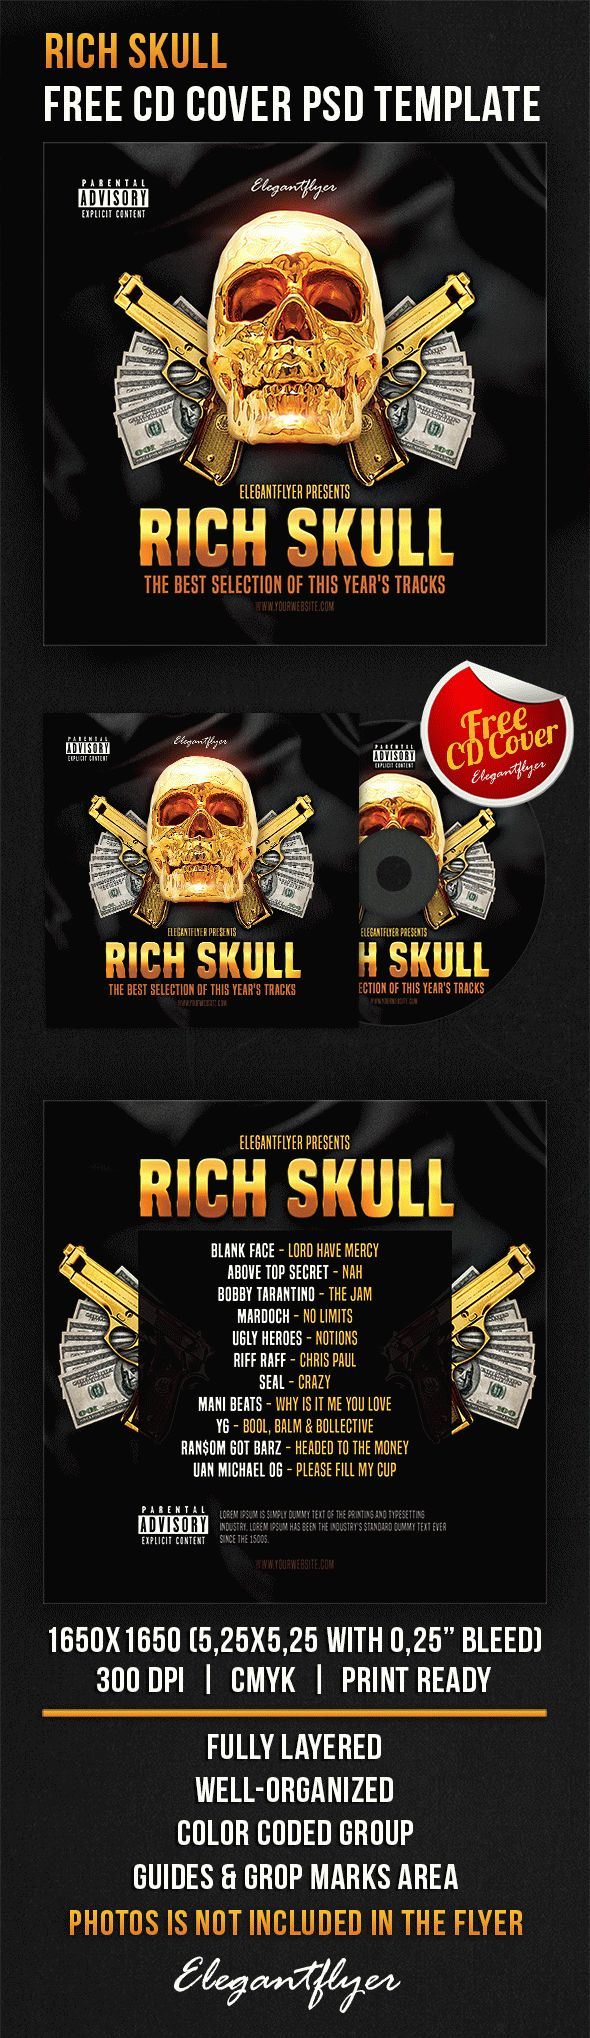 Rich Skull – Free CD Cover PSD Template